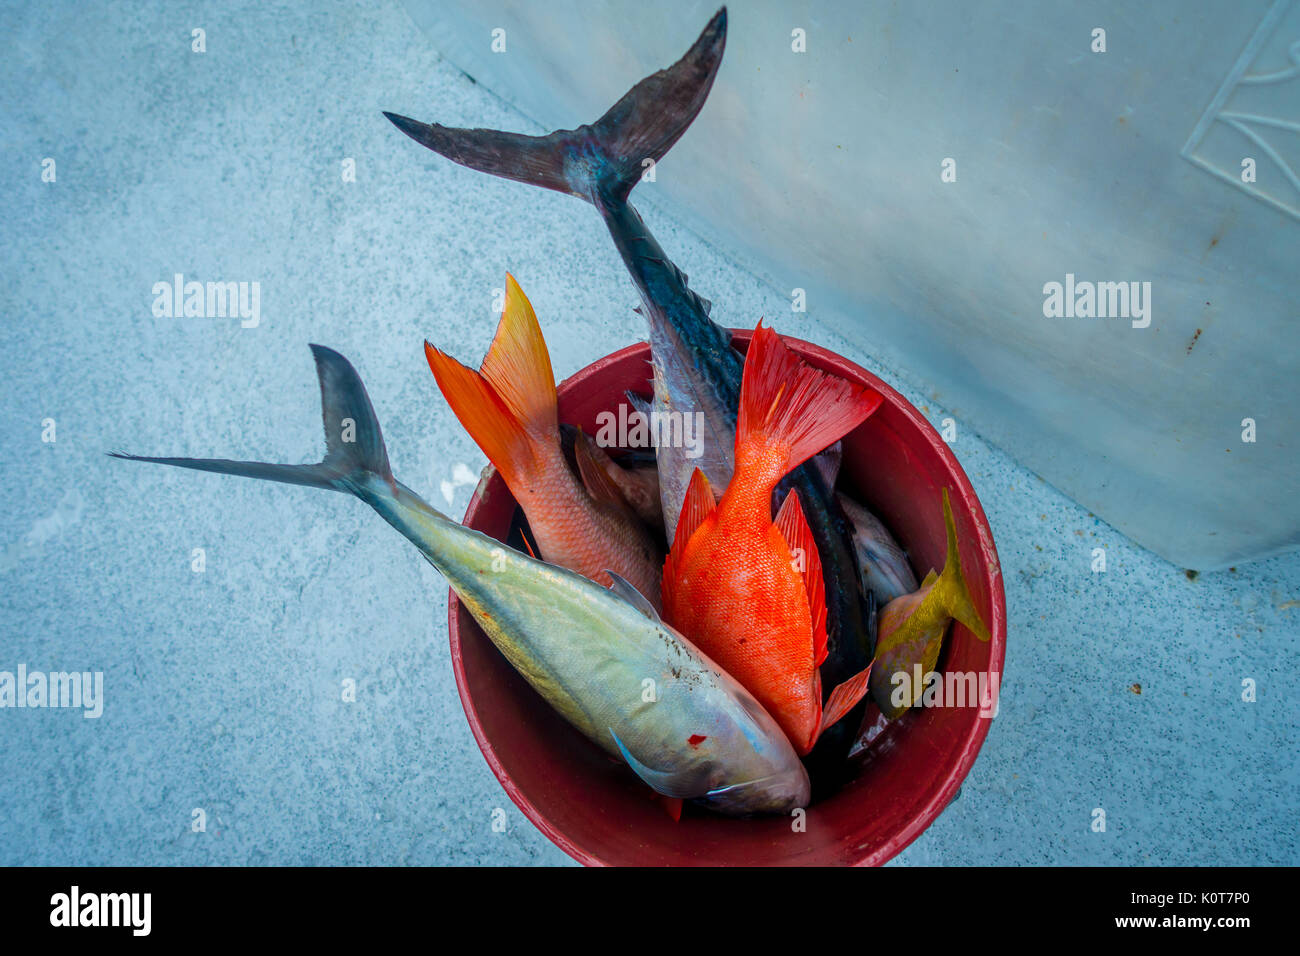 Close up of assorted fishes inside of a red pail at the Fort Lauderdale, Florida Stock Photo